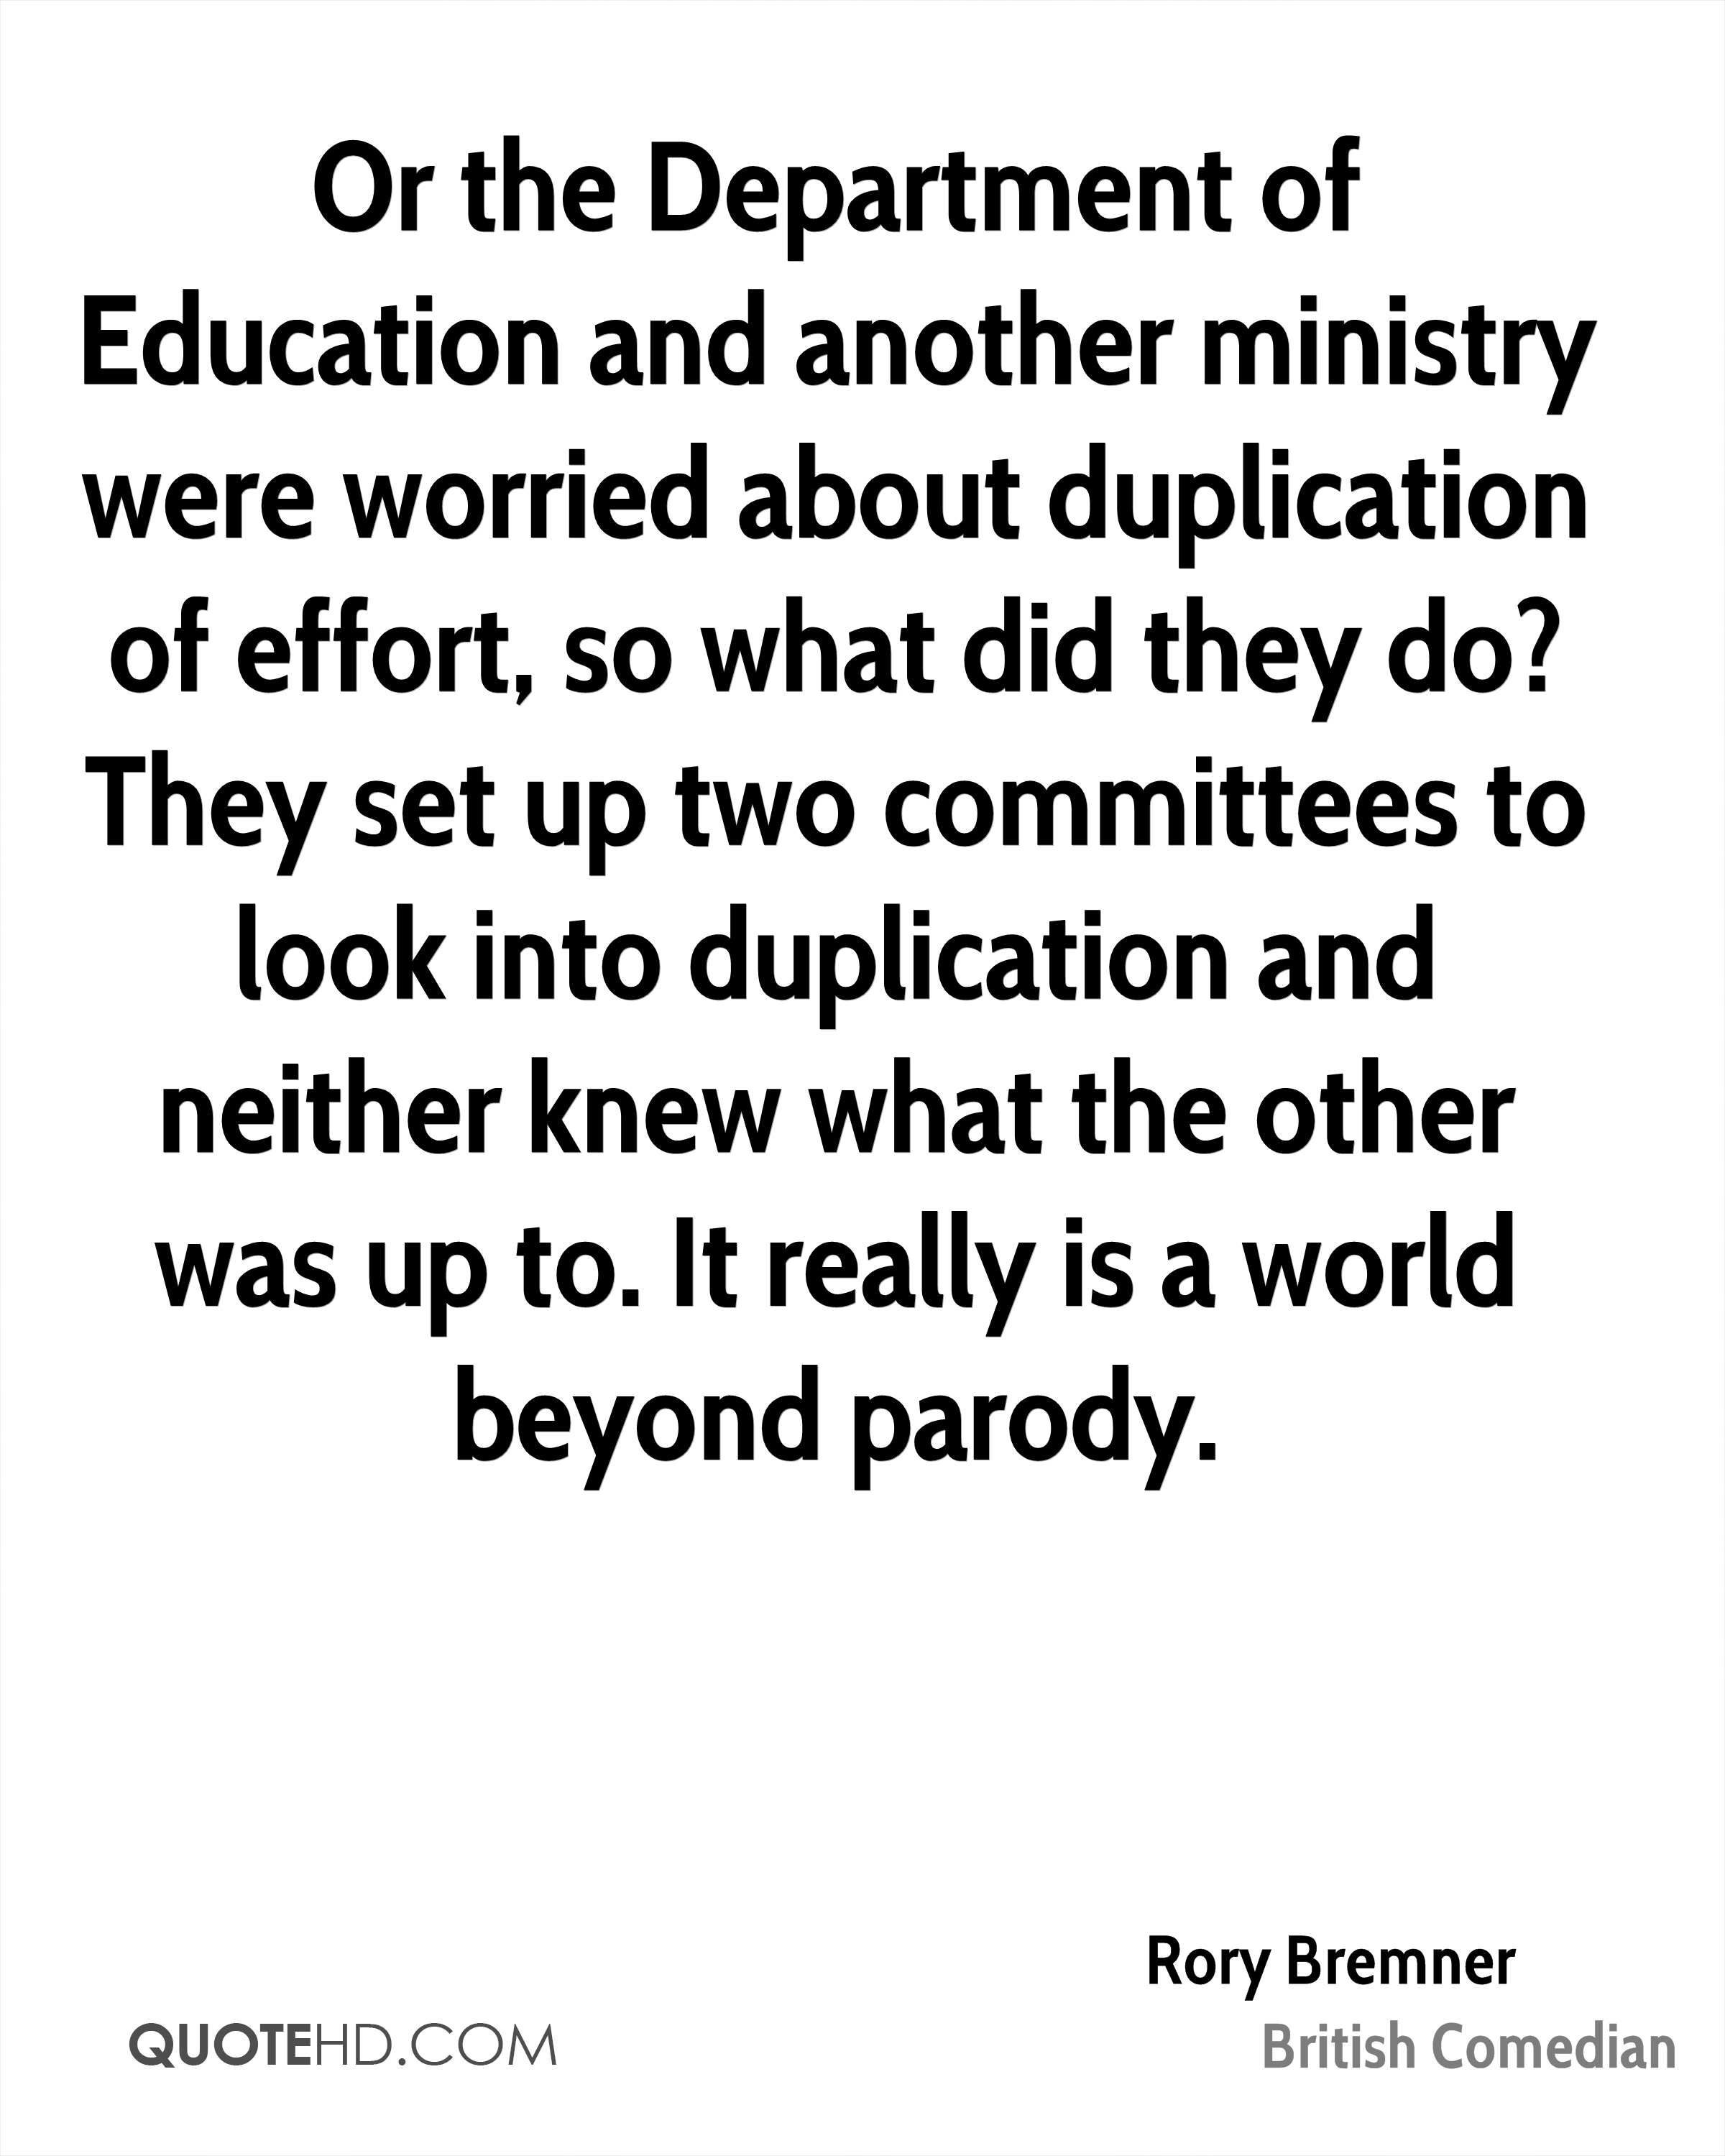 Or the Department of Education and another ministry were worried about duplication of effort, so what did they do? They set up two committees to look into duplication and neither knew what the other was up to. It really is a world beyond parody.